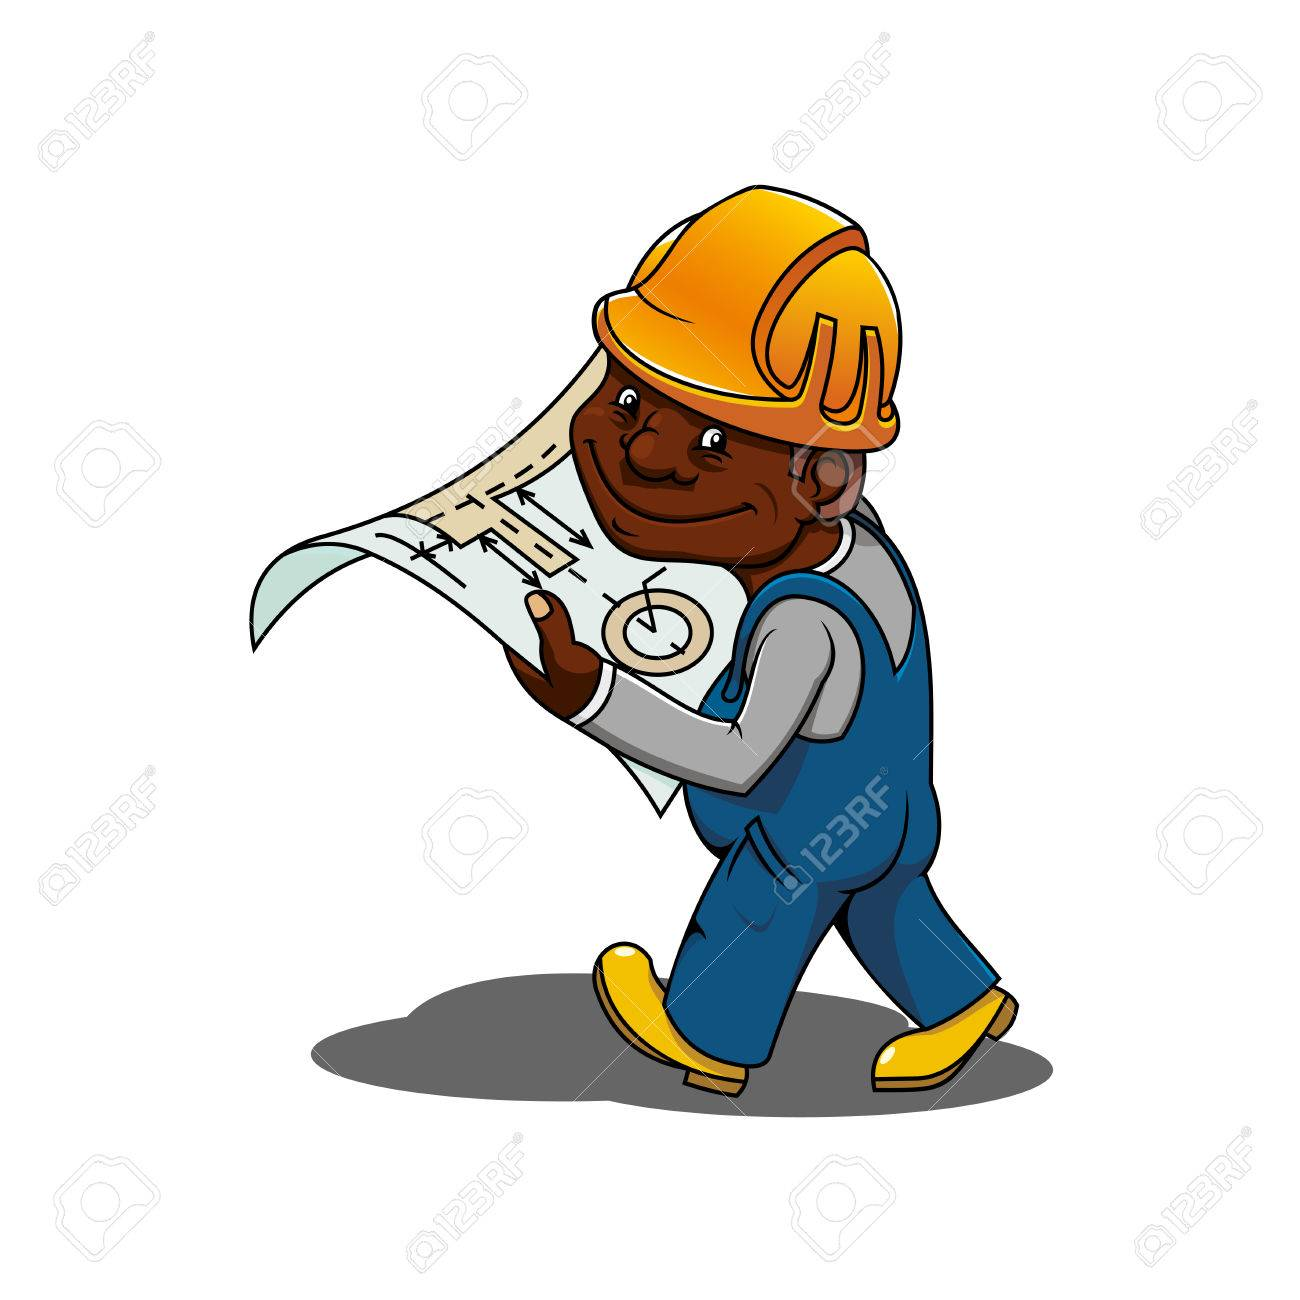 African american construction engineer or builder cartoon character african american construction engineer or builder cartoon character in yellow hard hat and blue overalls holding malvernweather Image collections